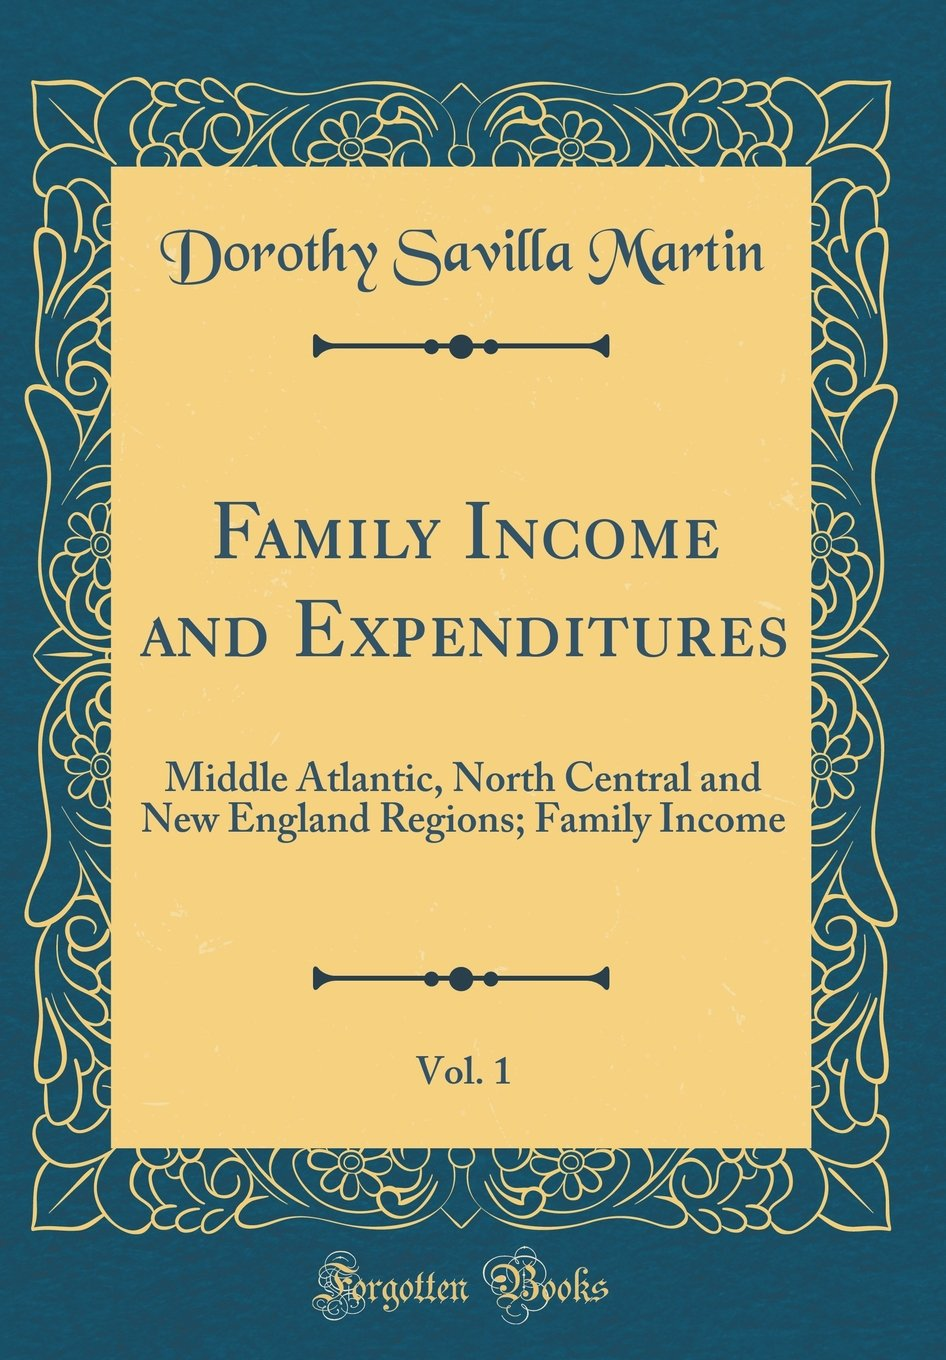 Family Income and Expenditures, Vol. 1: Middle Atlantic, North Central and New England Regions; Family Income (Classic Reprint) pdf epub